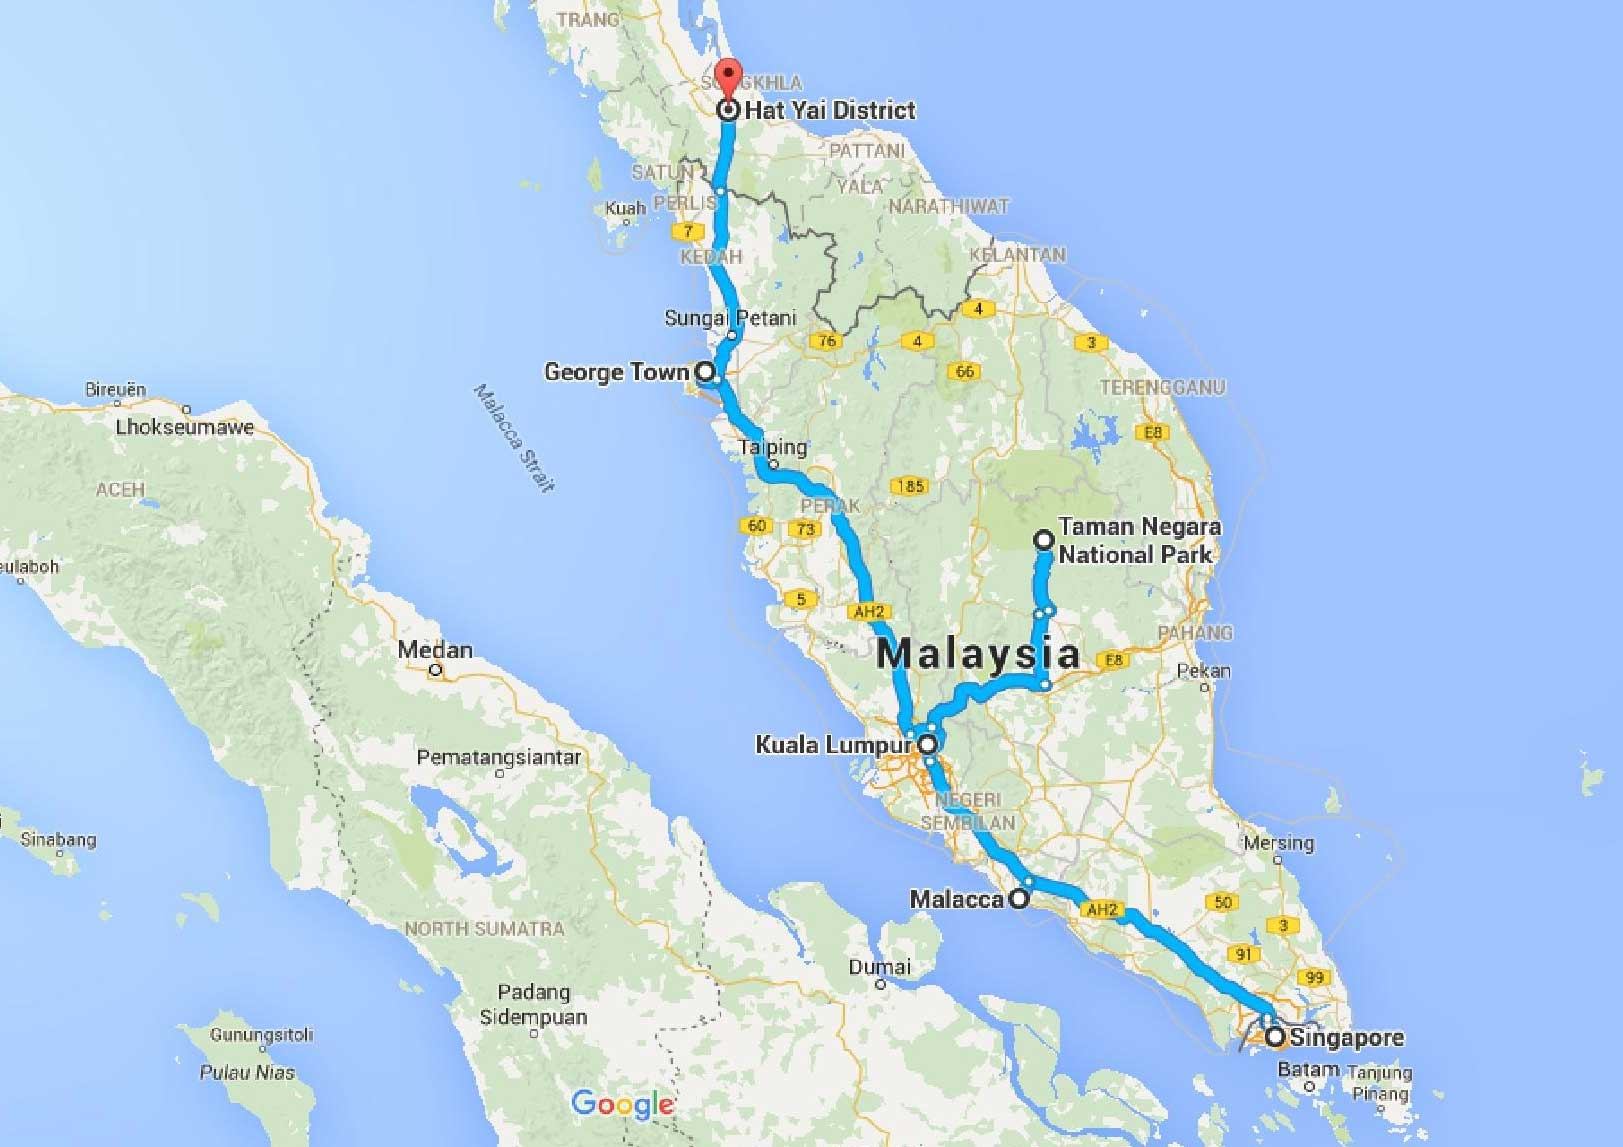 Borneo. Singapore. Malaysia: maps, costs and itinerary